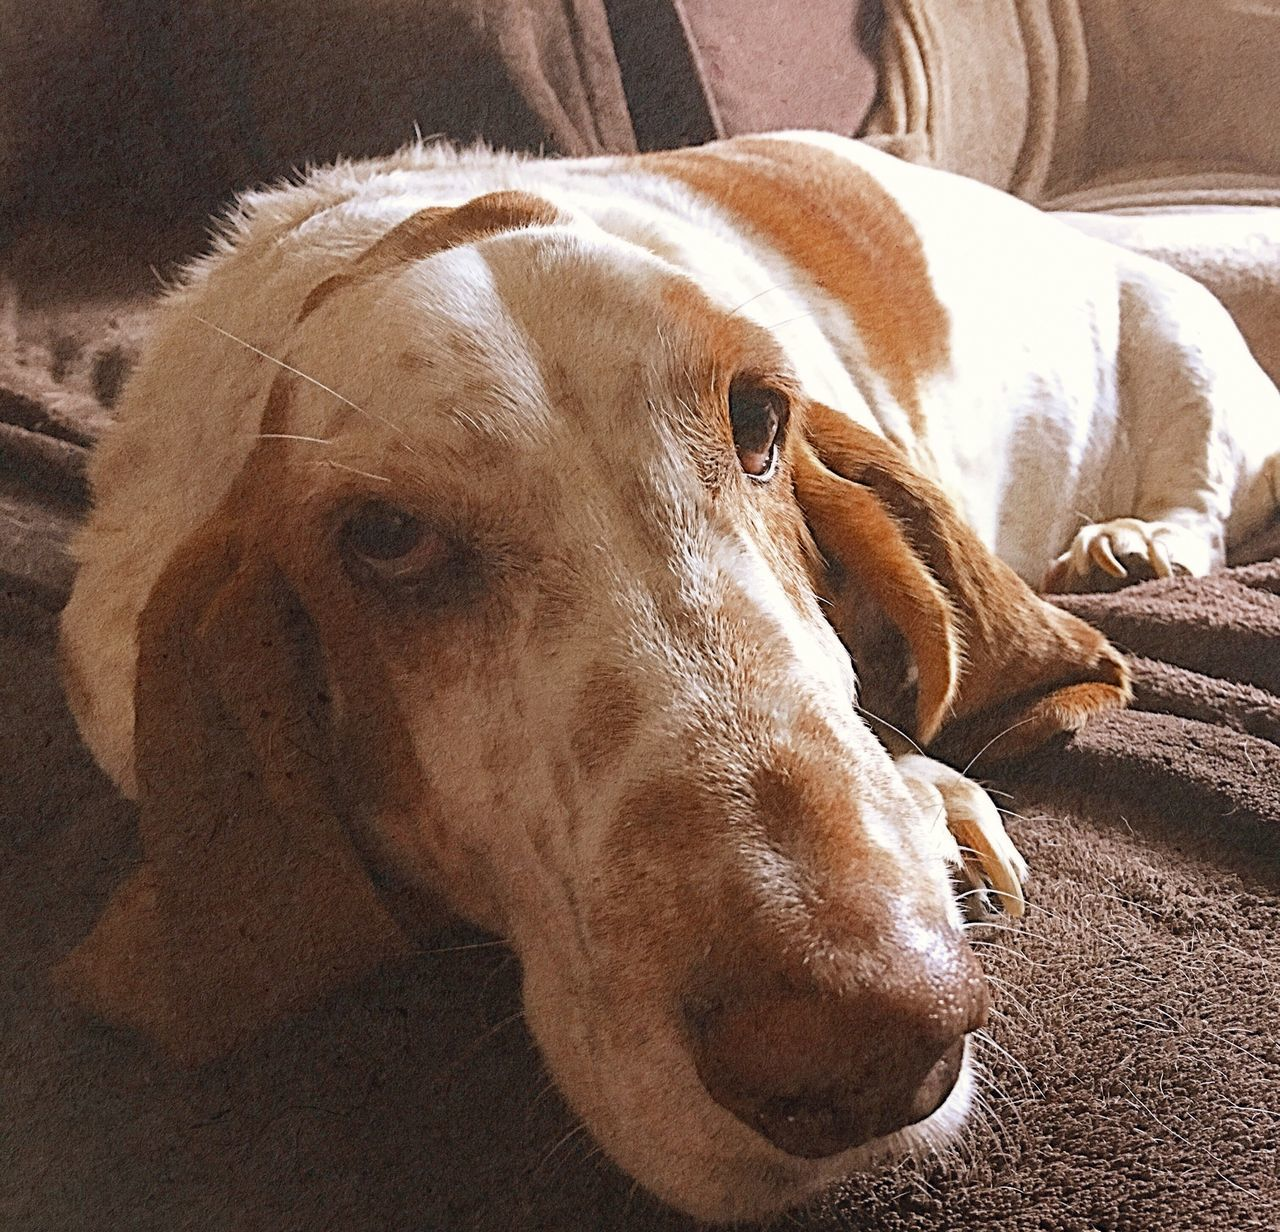 My little cuddle boy One Animal Close-up No People Iphonephotography Bassethound Moments Bassethoundsare Best Relaxeddoggie Pampered Pooch Rescuedbassethound RescuedIsMyFavoriteBreed Ilovemybassethound Portrait Looking At Camera Relaxedand Happy